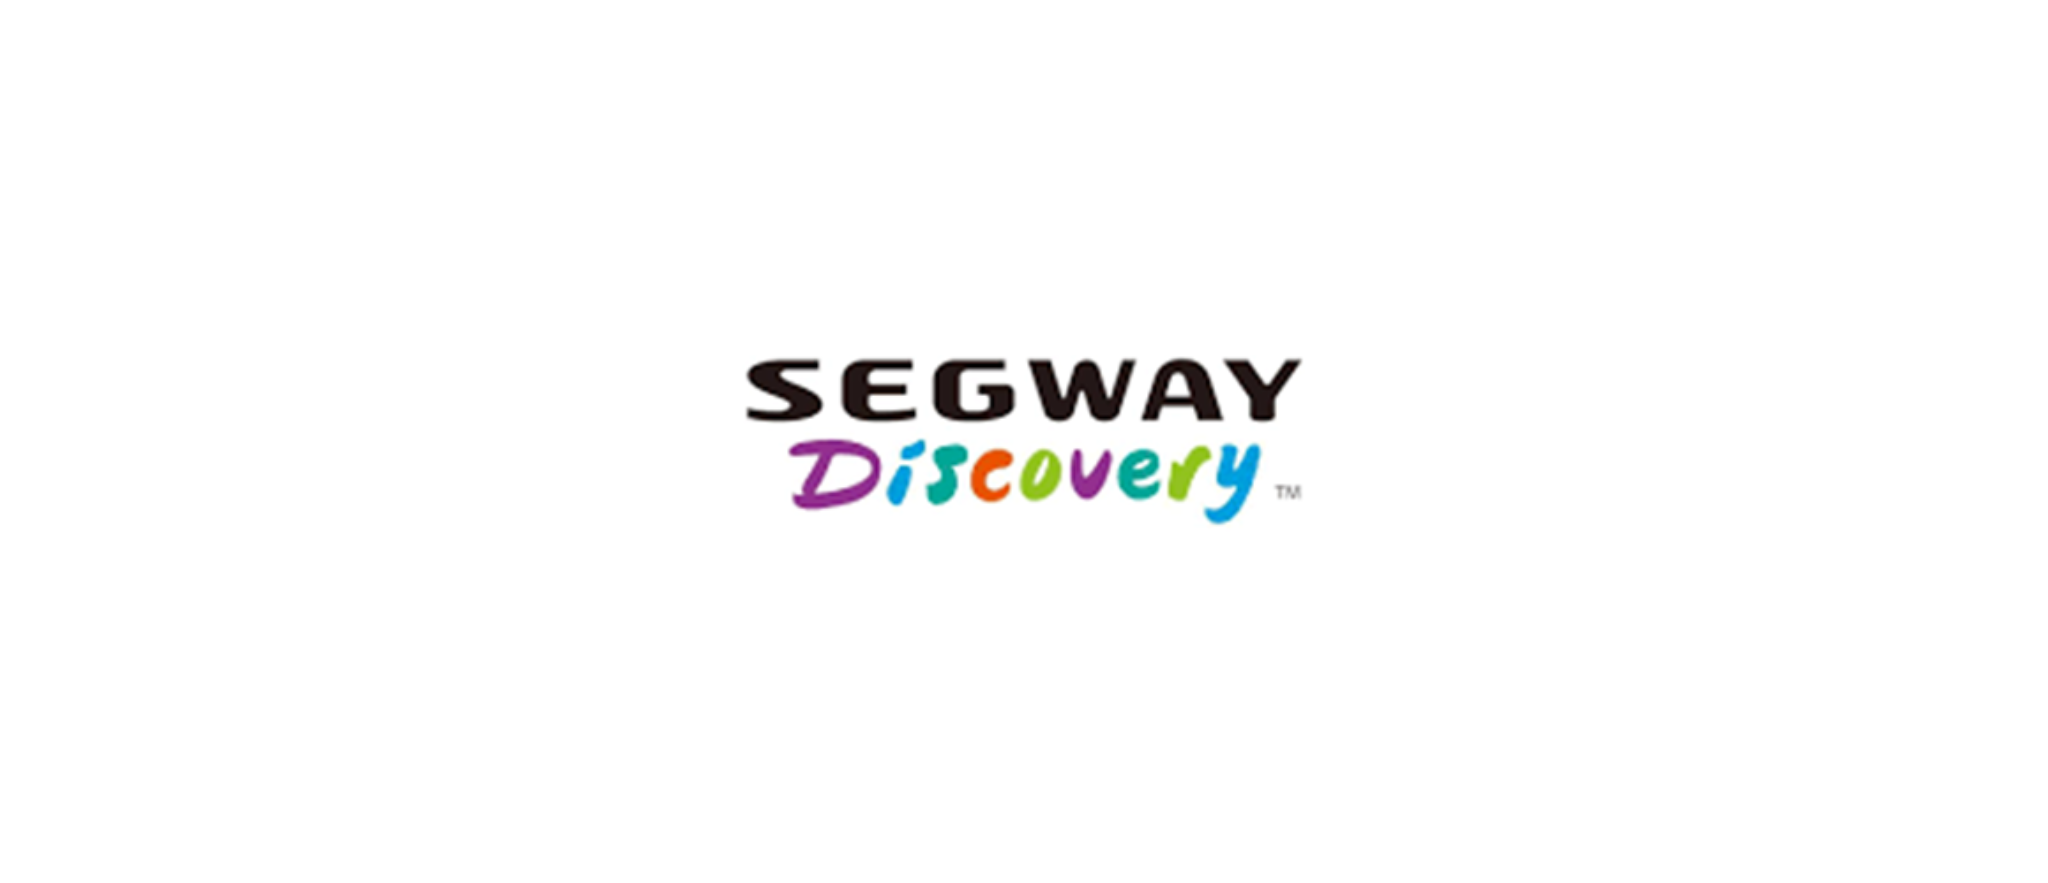 segway-discovery